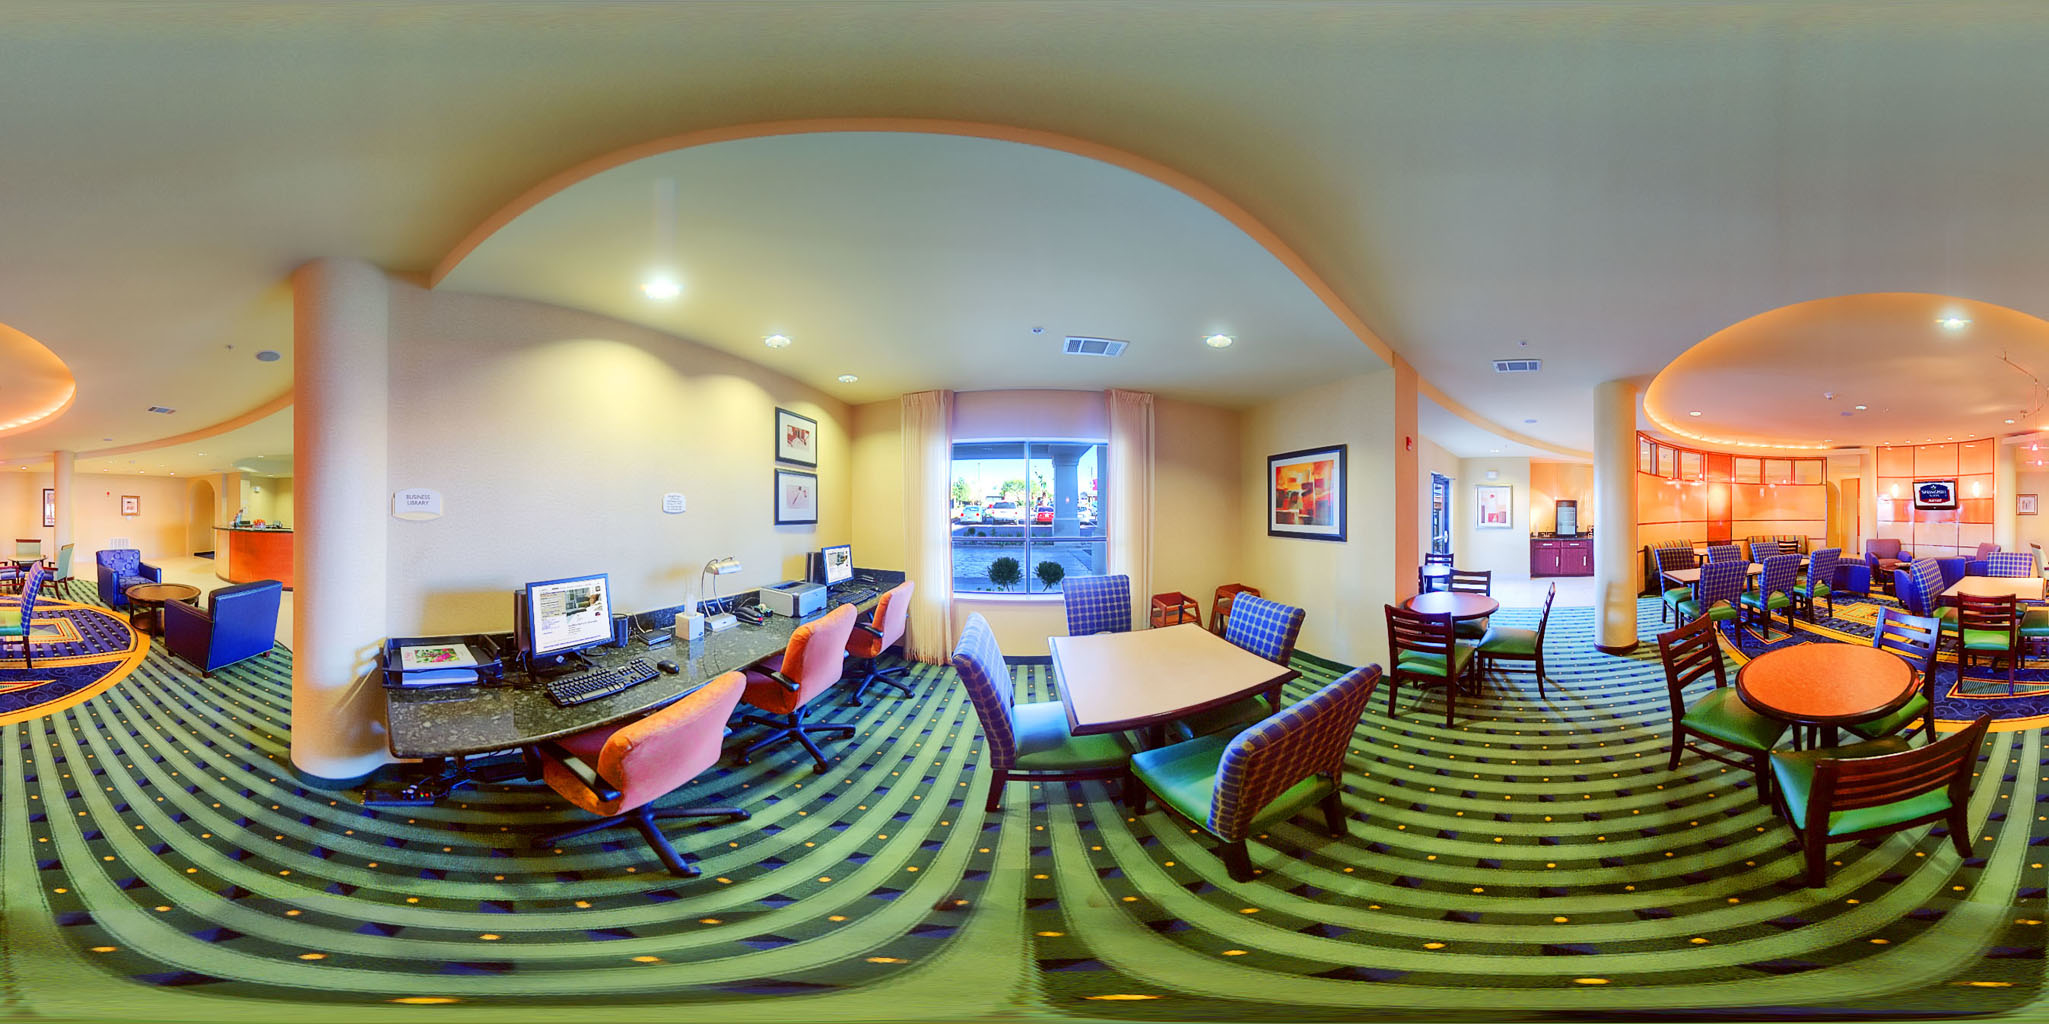 SpringHill Suites by Marriott El Paso image 4